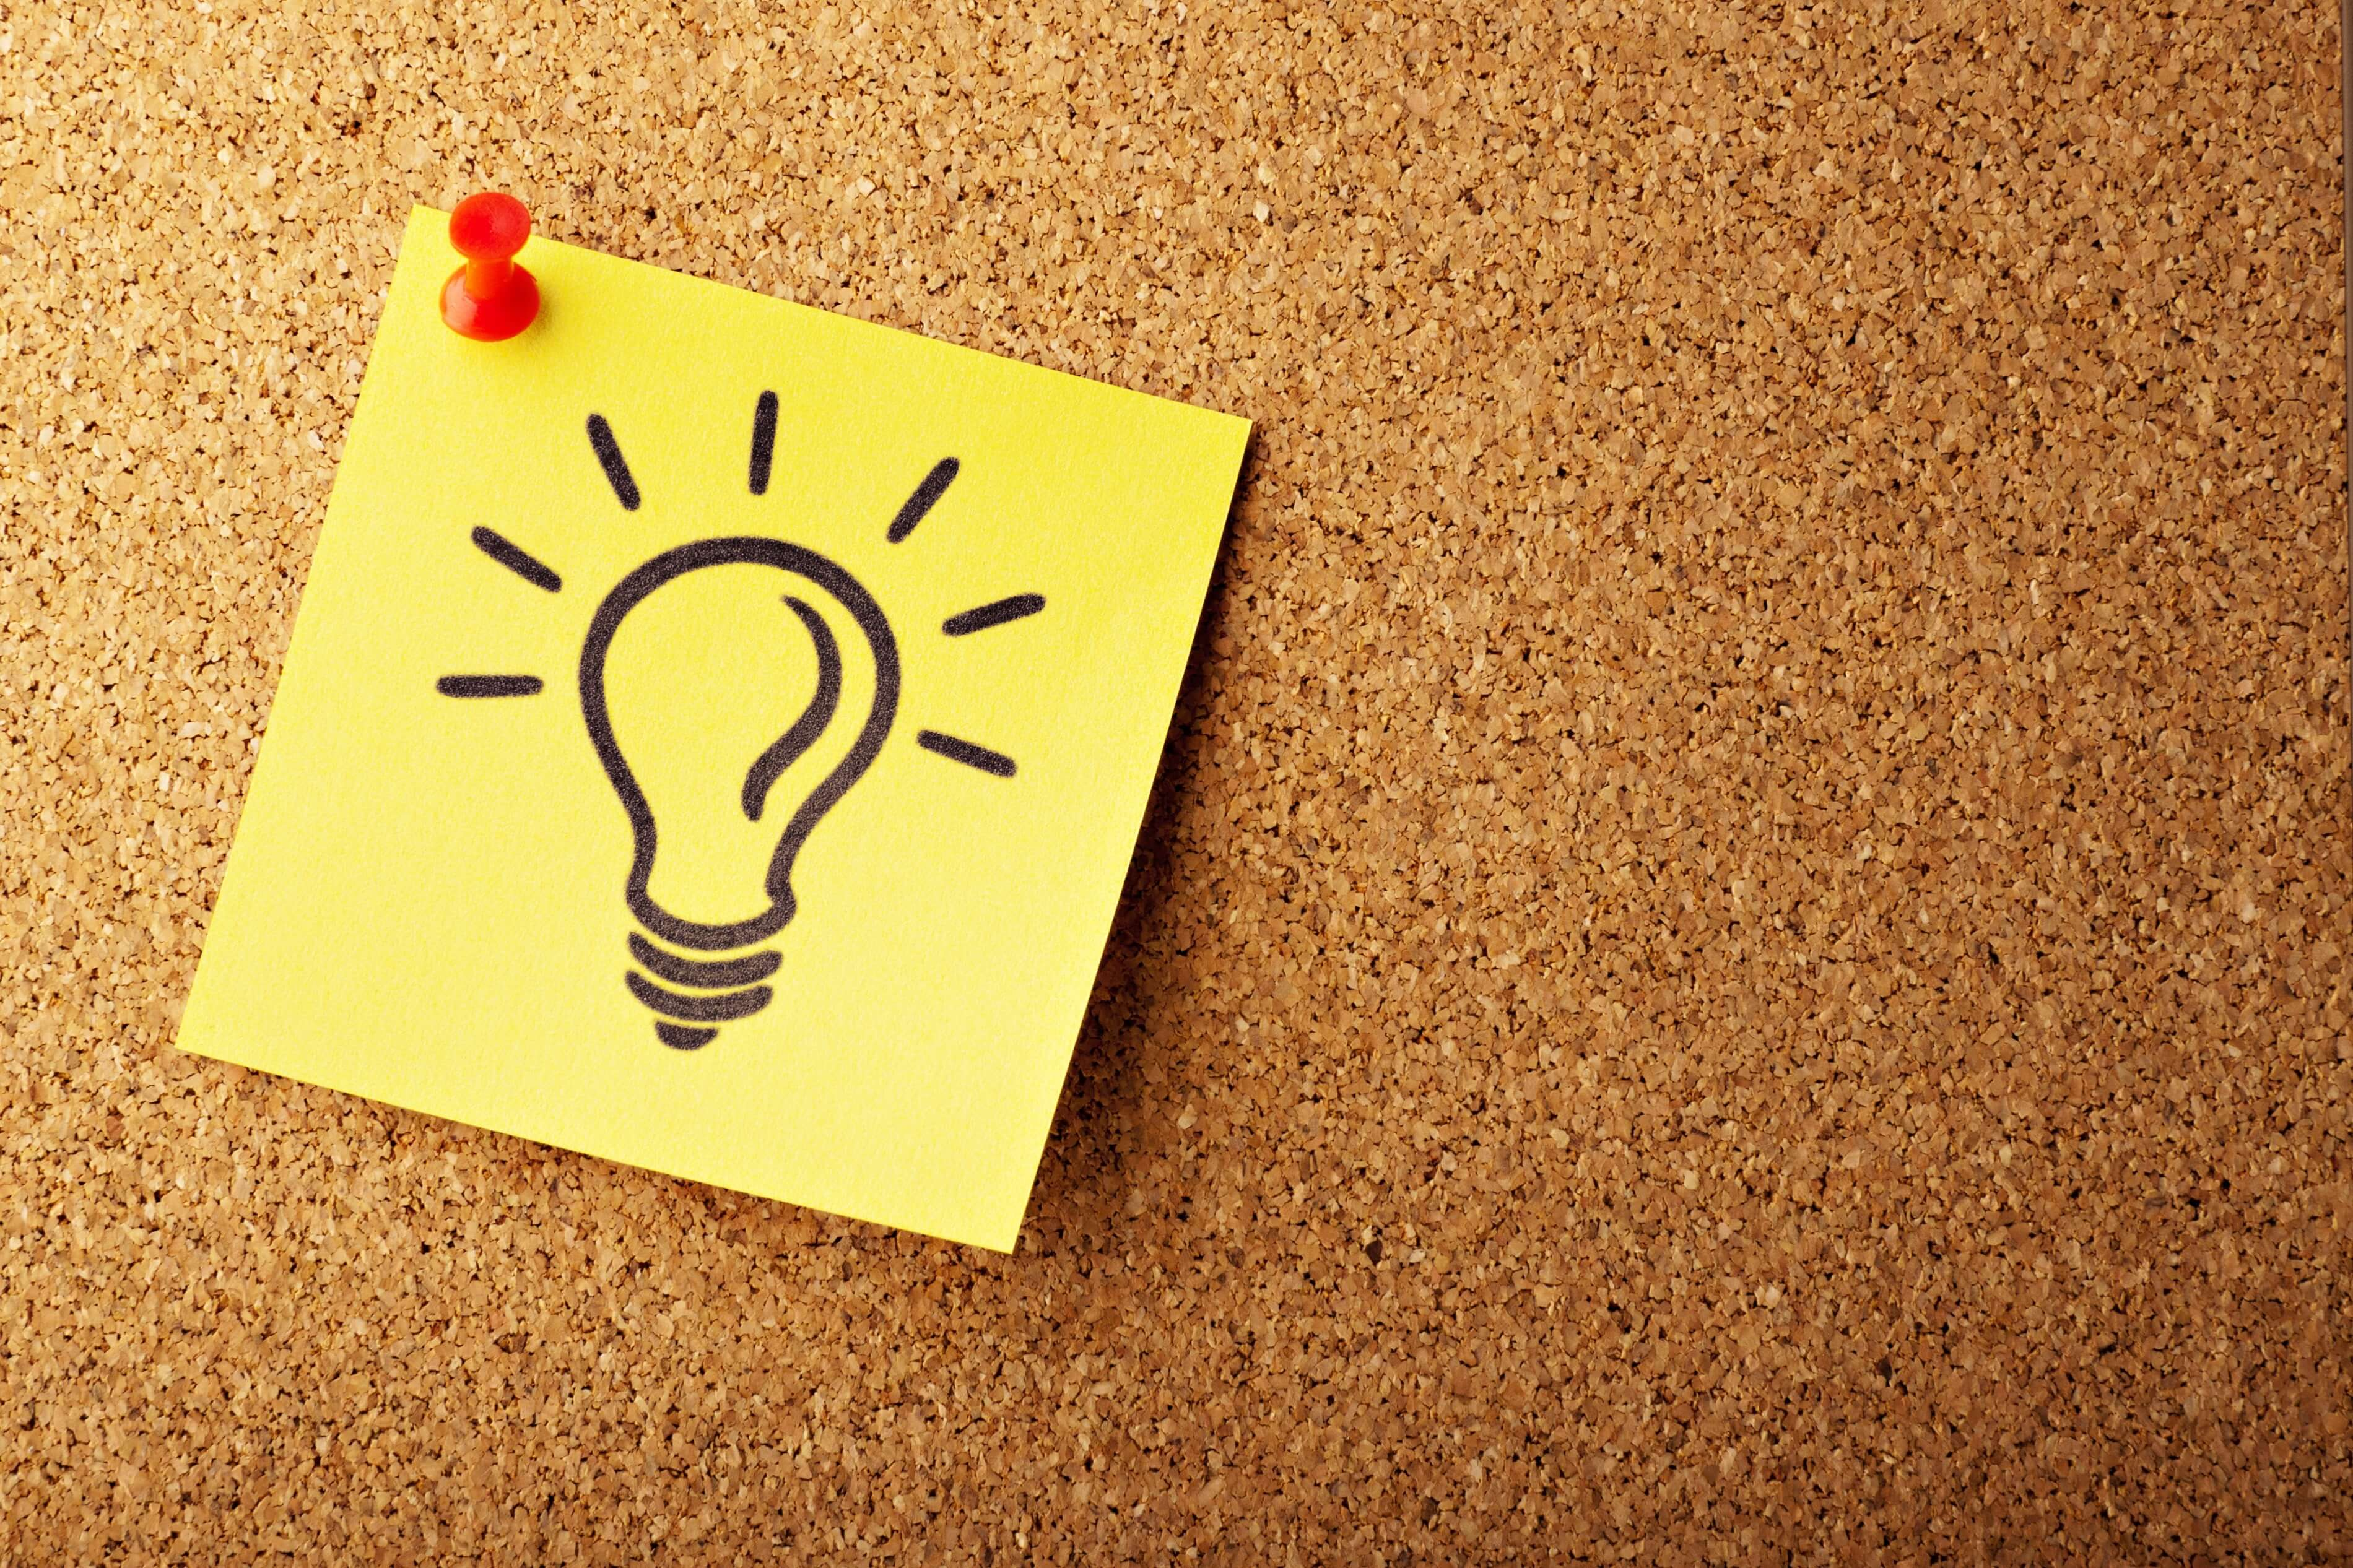 Lightbulb drawn on a post-it note - Photo by AbsolutVision on Unsplash